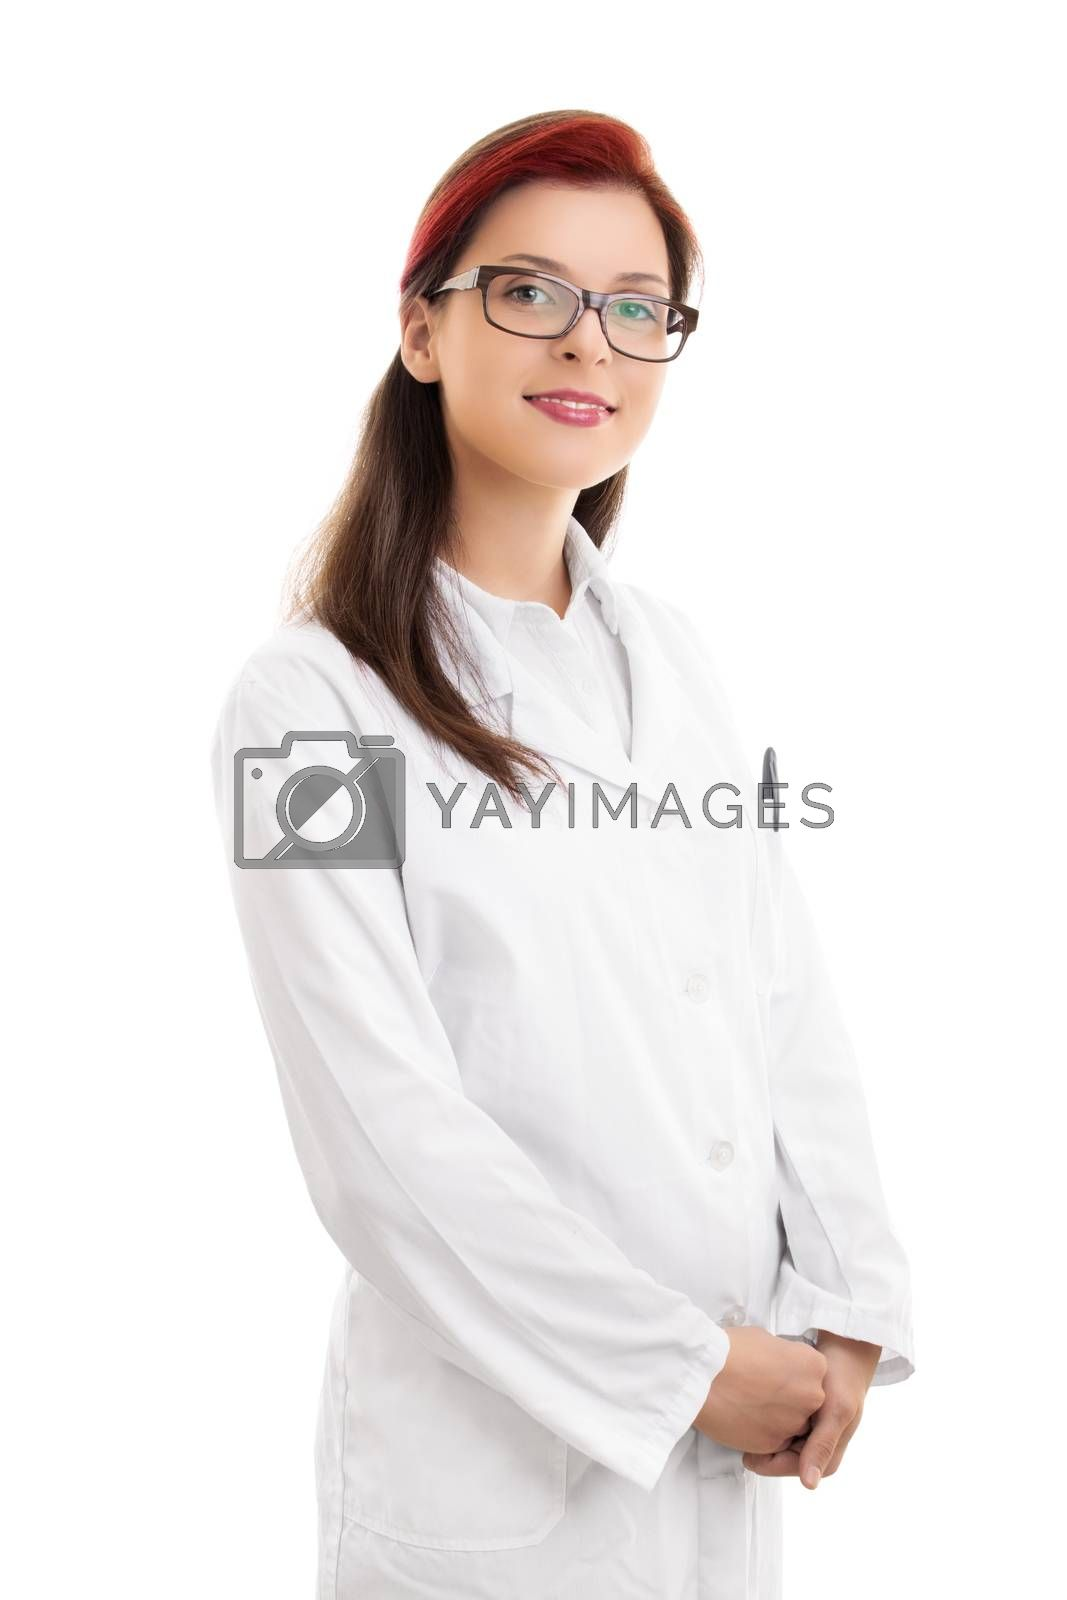 Medicine, science and profession concept. Portrait of a smiling young female doctor or scientist or pharmacist or chemist in white uniform coat, isolated on white background.